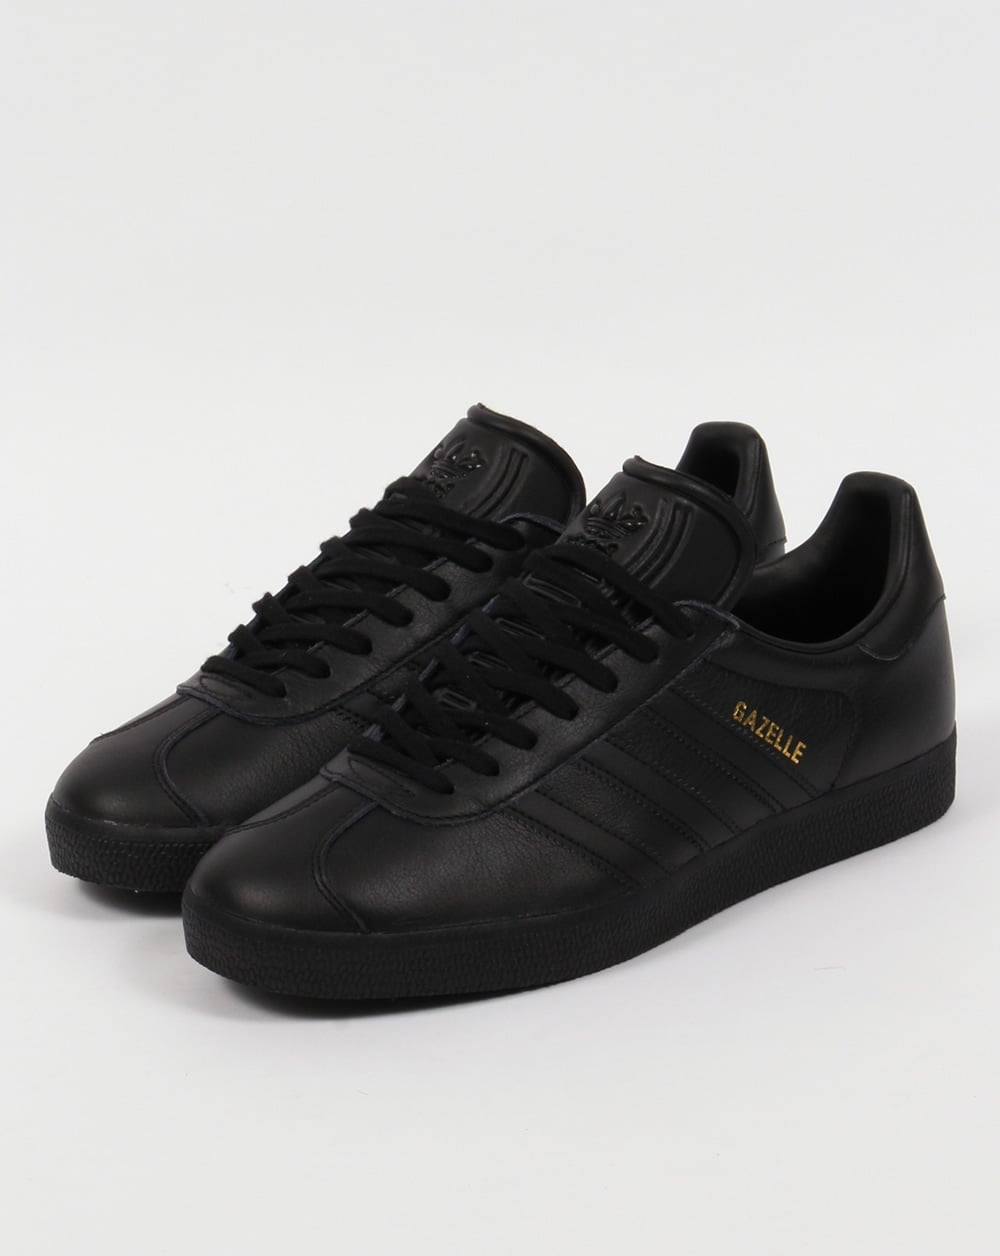 Adidas Gazelle Leather, Triple Black